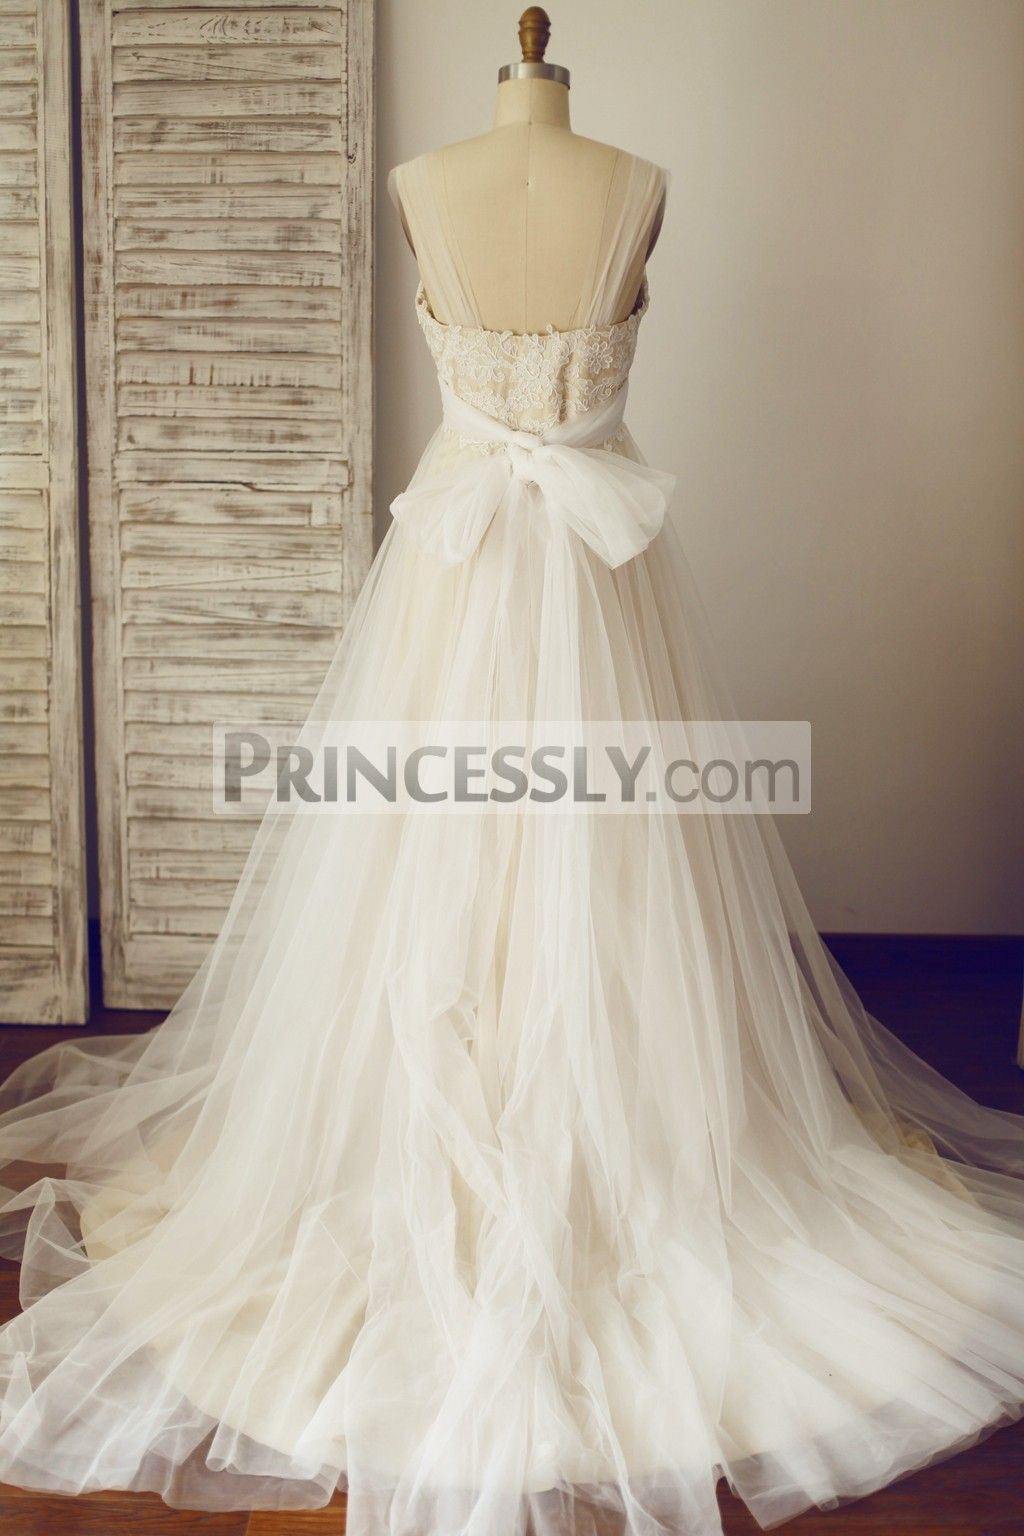 Champagne and ivory wedding dress  Sheer Illusion Lace Tulle Wedding Dress with Champagne Lining